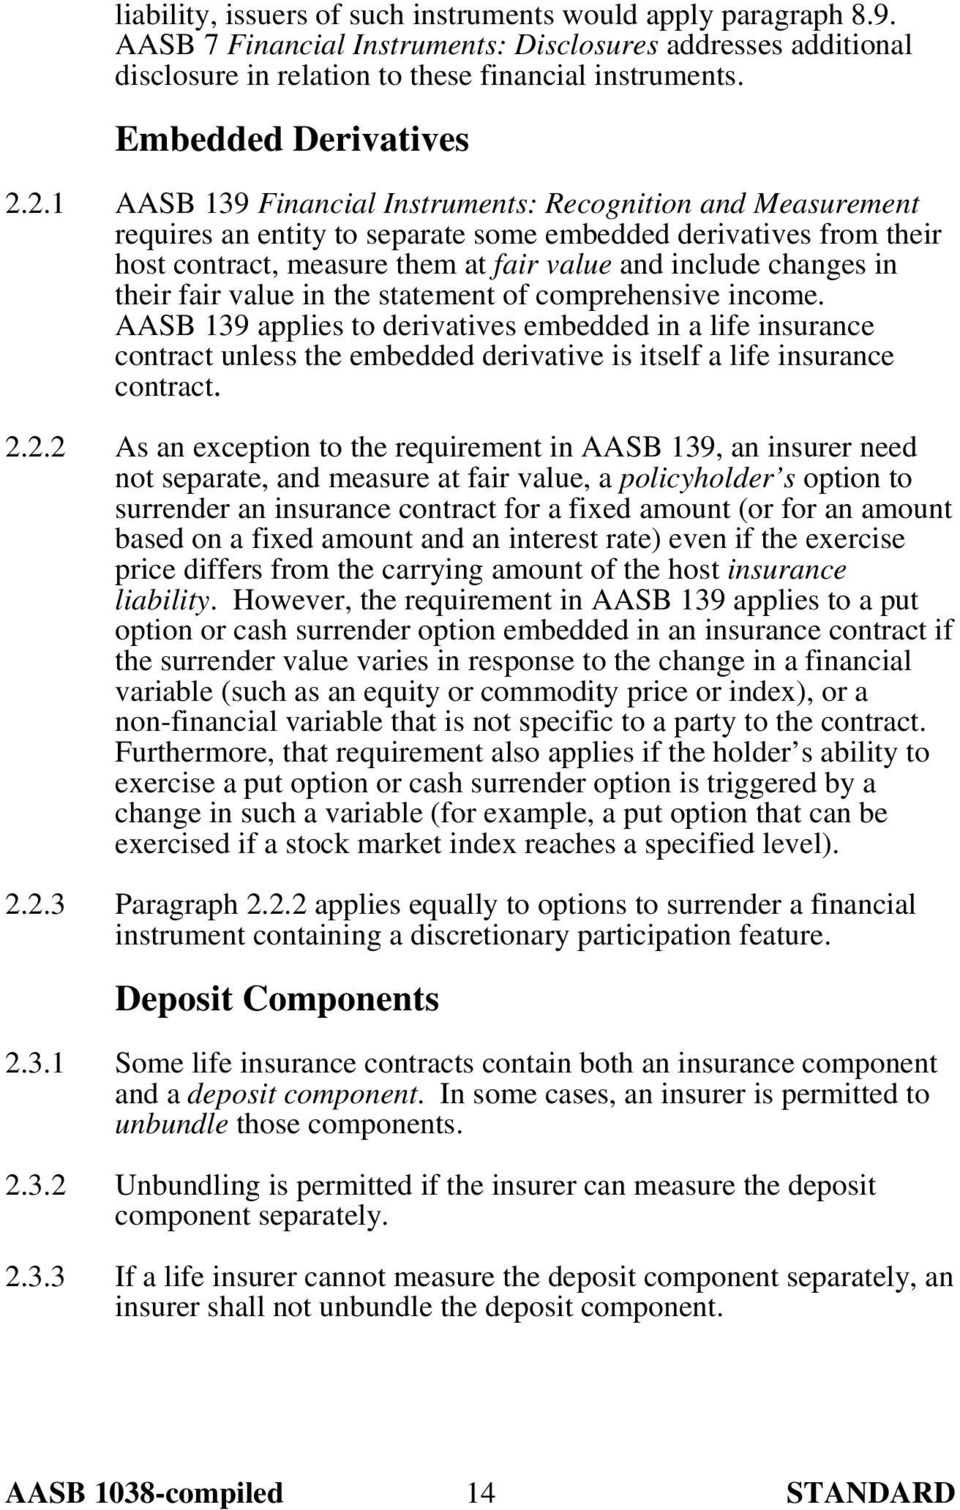 2.1 AASB 139 Financial Instruments: Recognition and Measurement requires an entity to separate some embedded derivatives from their host contract, measure them at fair value and include changes in